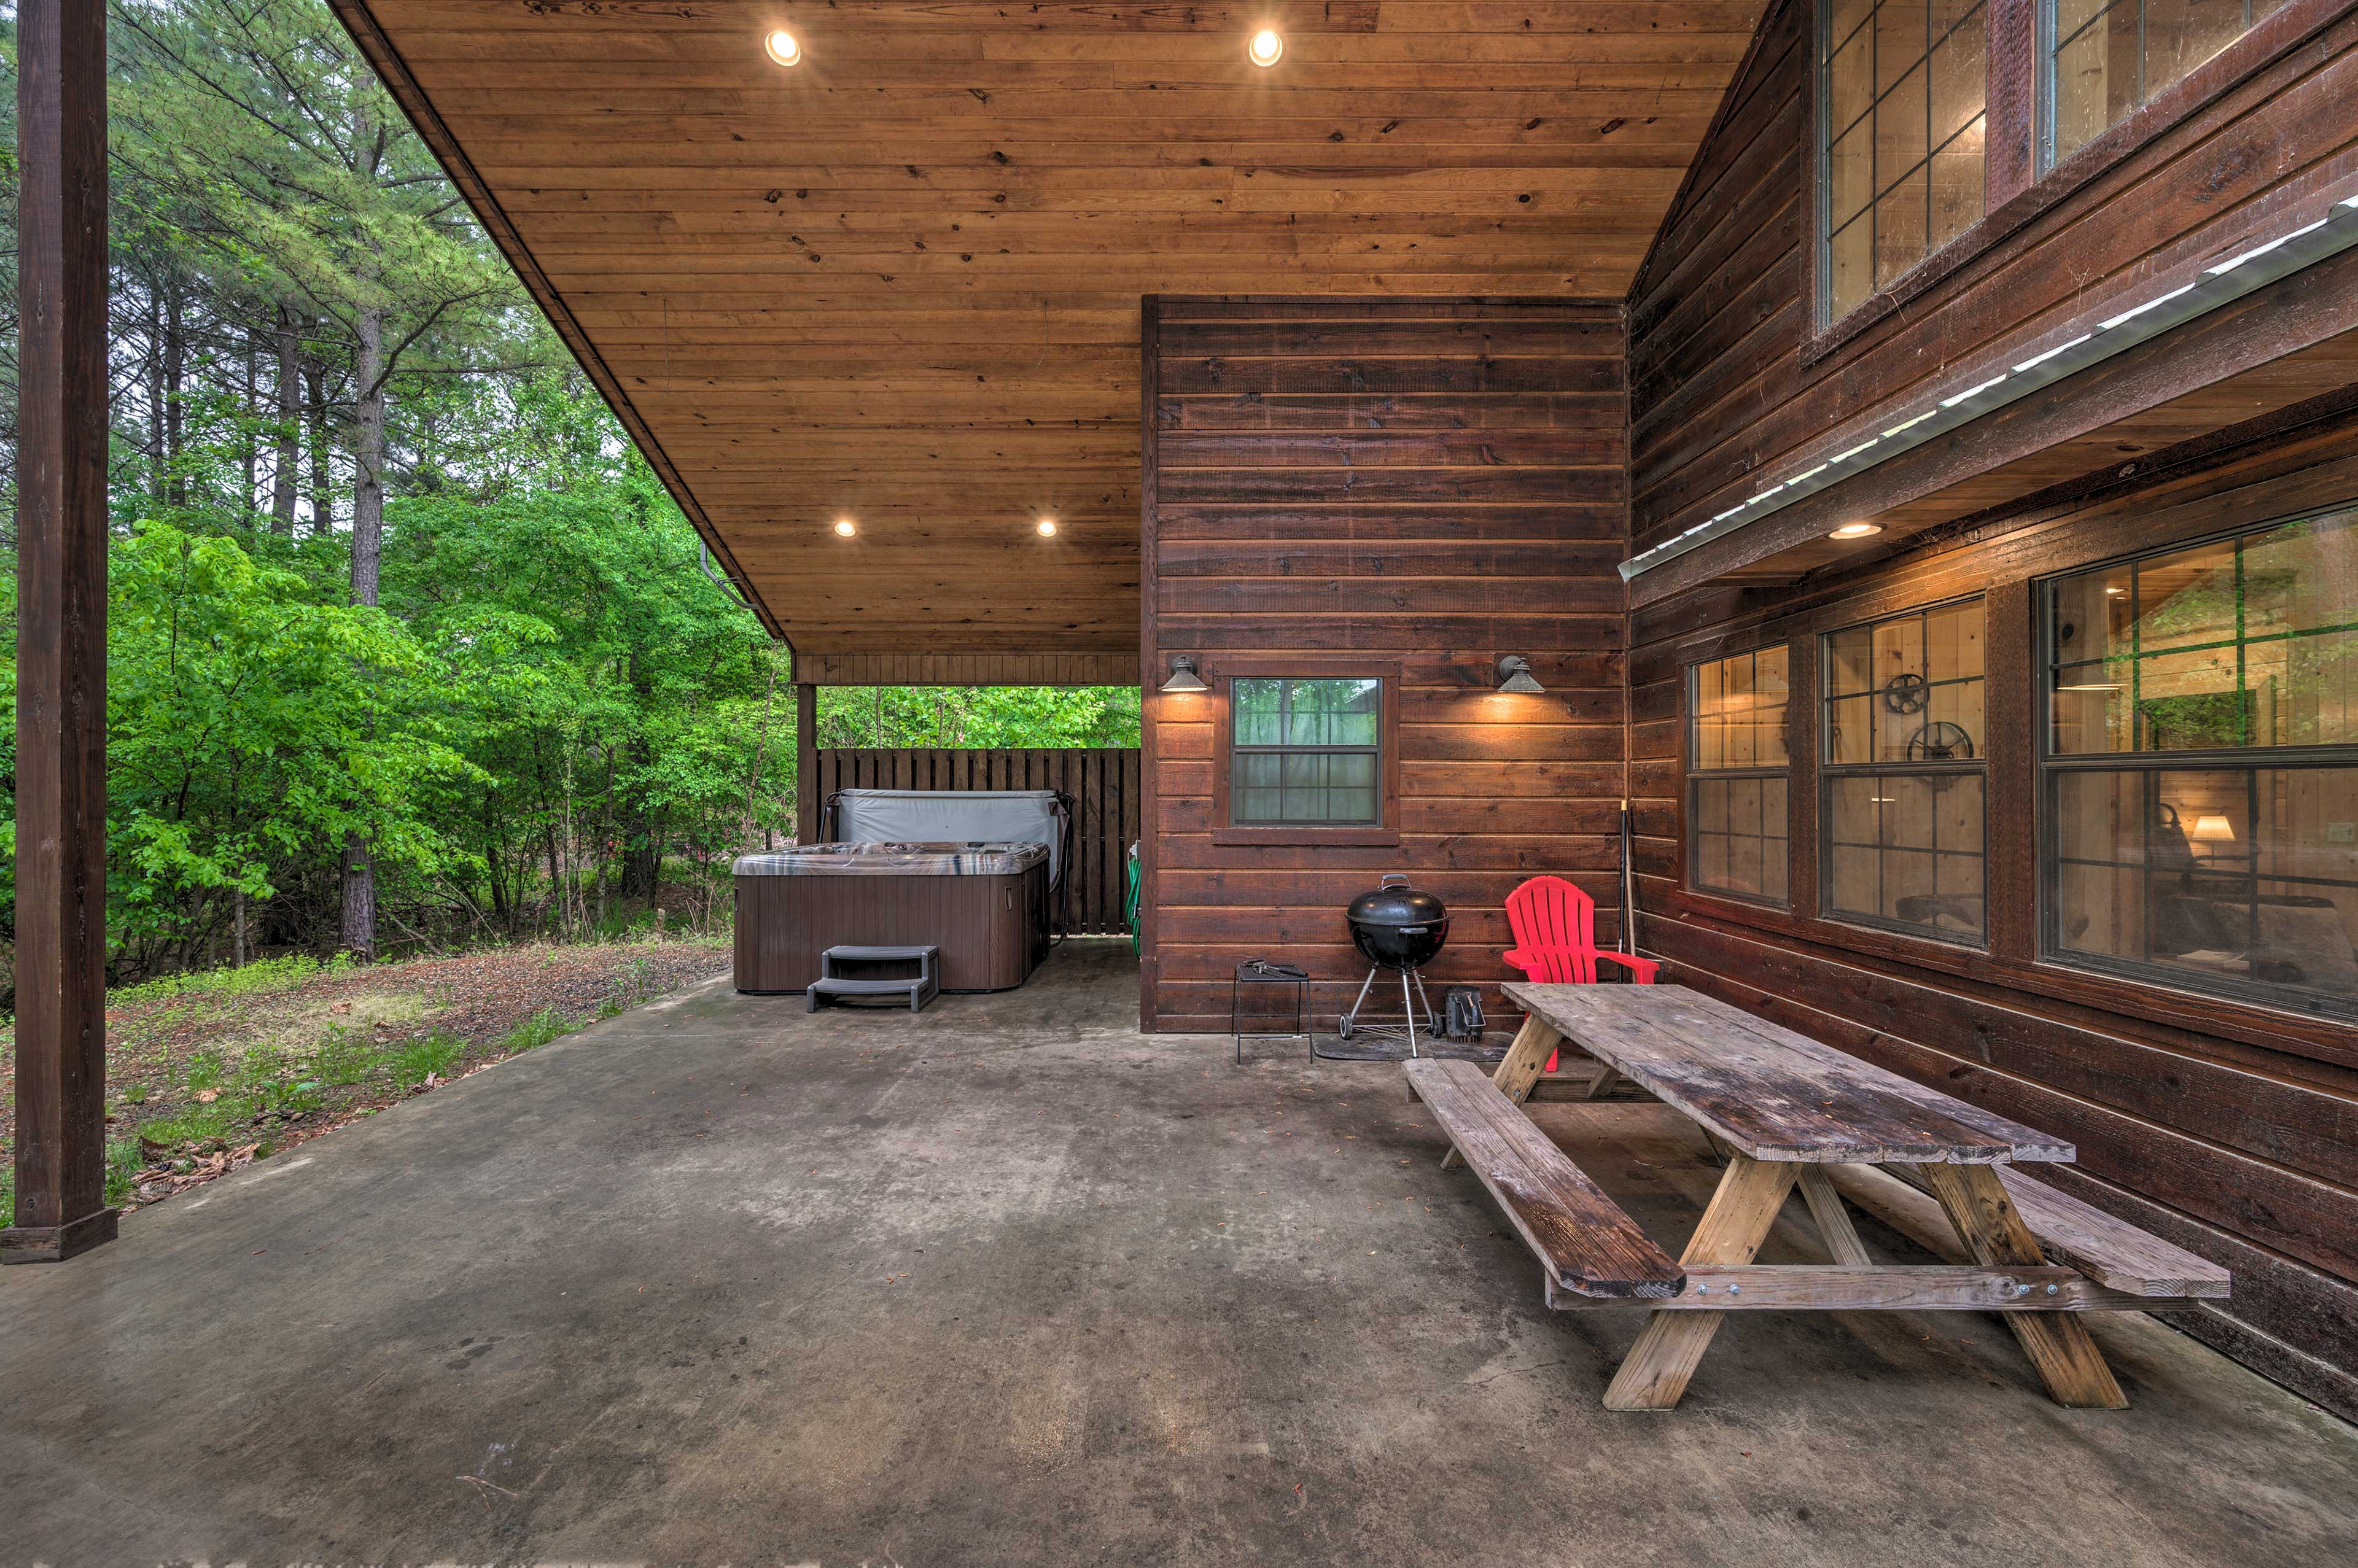 Private Partially Covered Patio | Wood-Burning Fireplace | Private Hot Tub